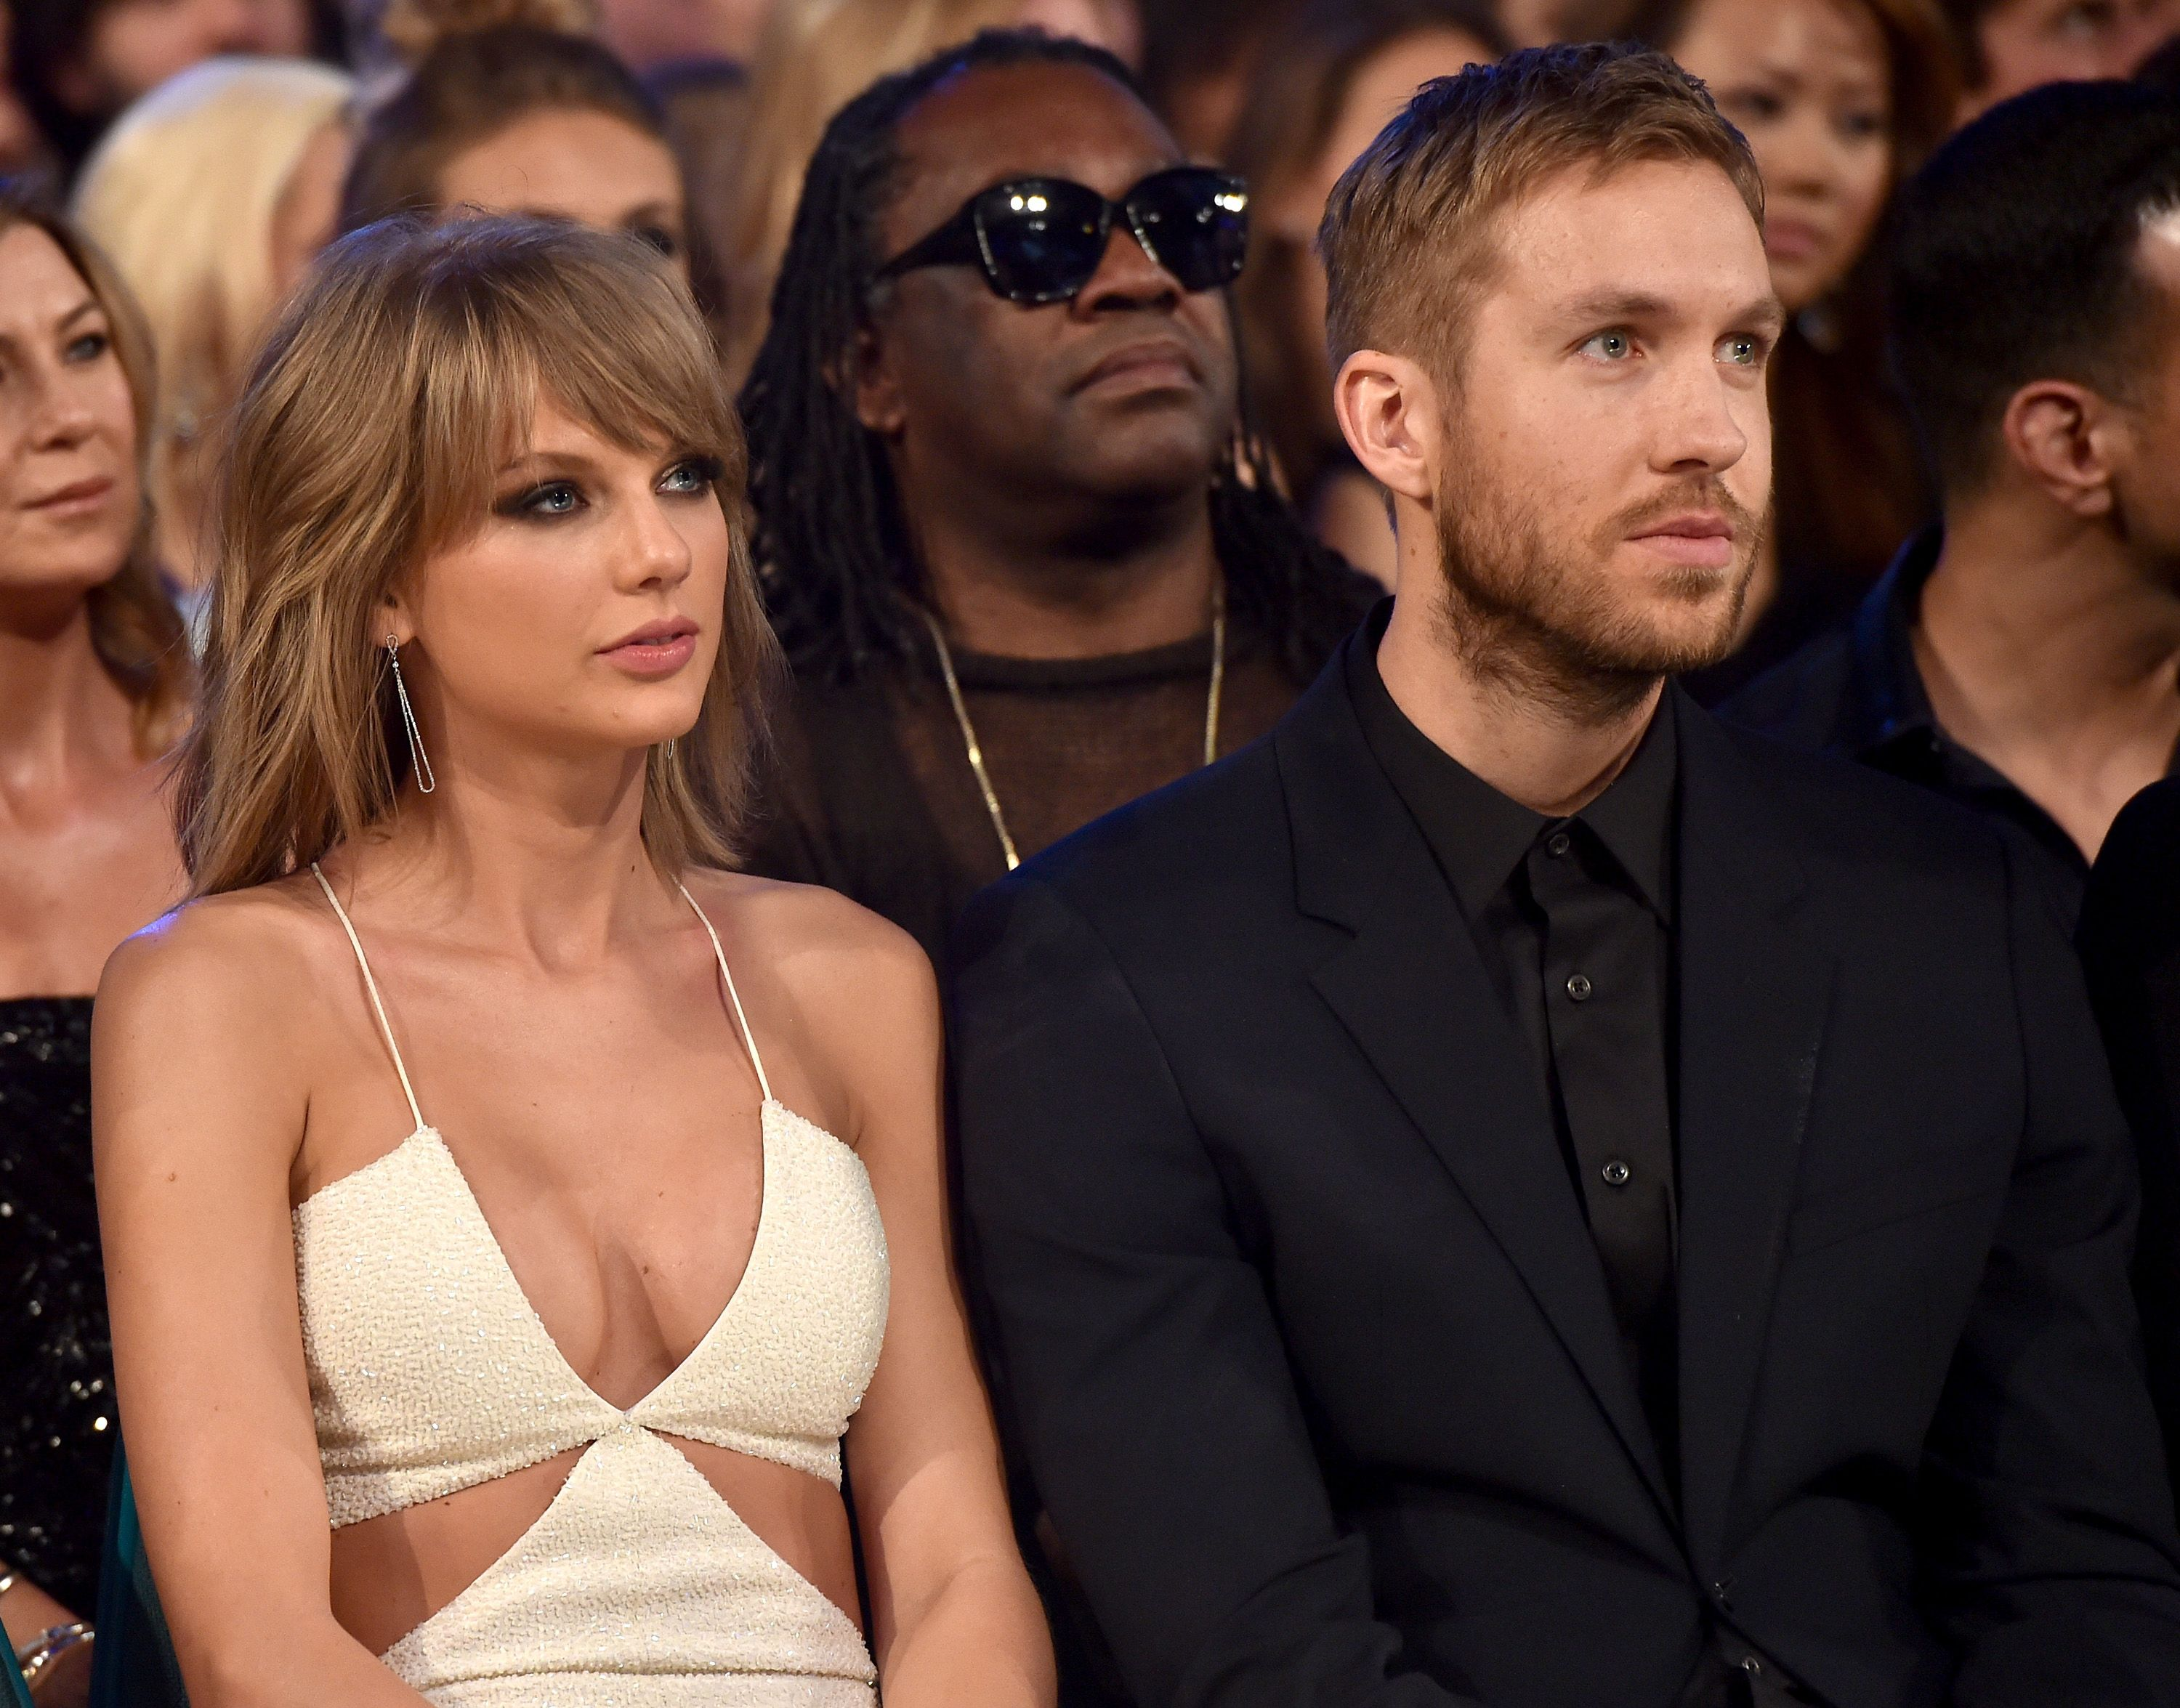 Taylor Swift And Calvin Harris To Star In Underwear Campaign